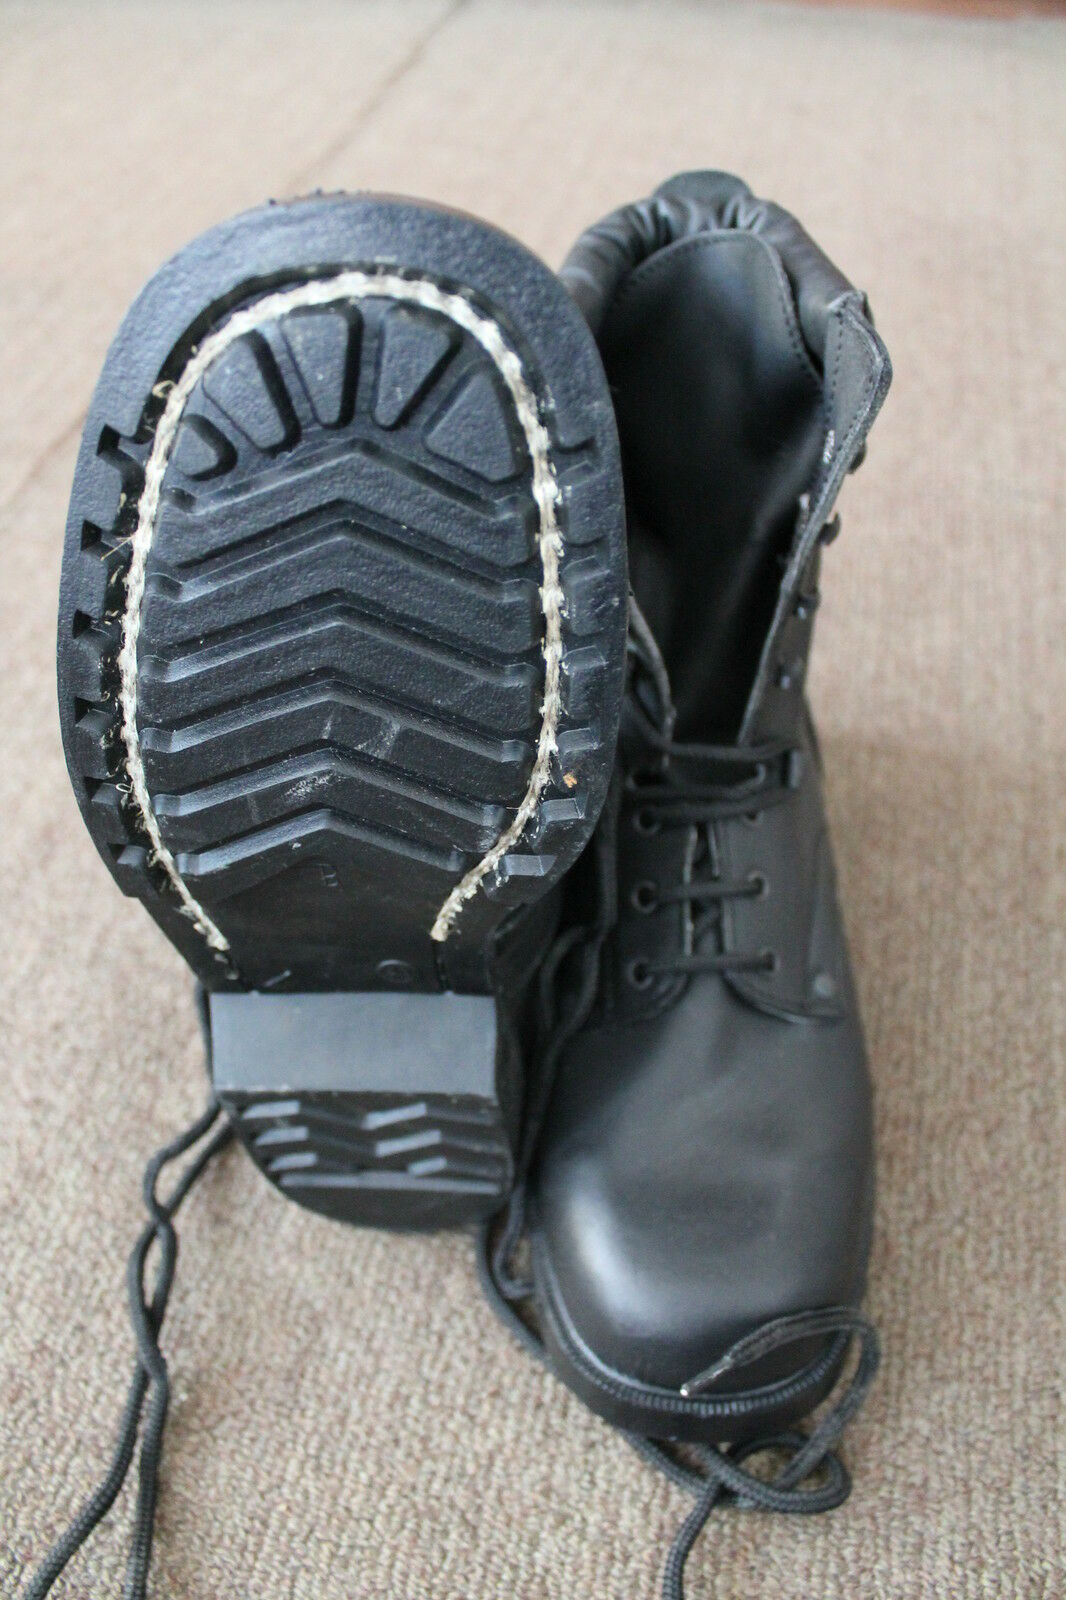 Men leather police boots appropriate for hunting and outdoor sports